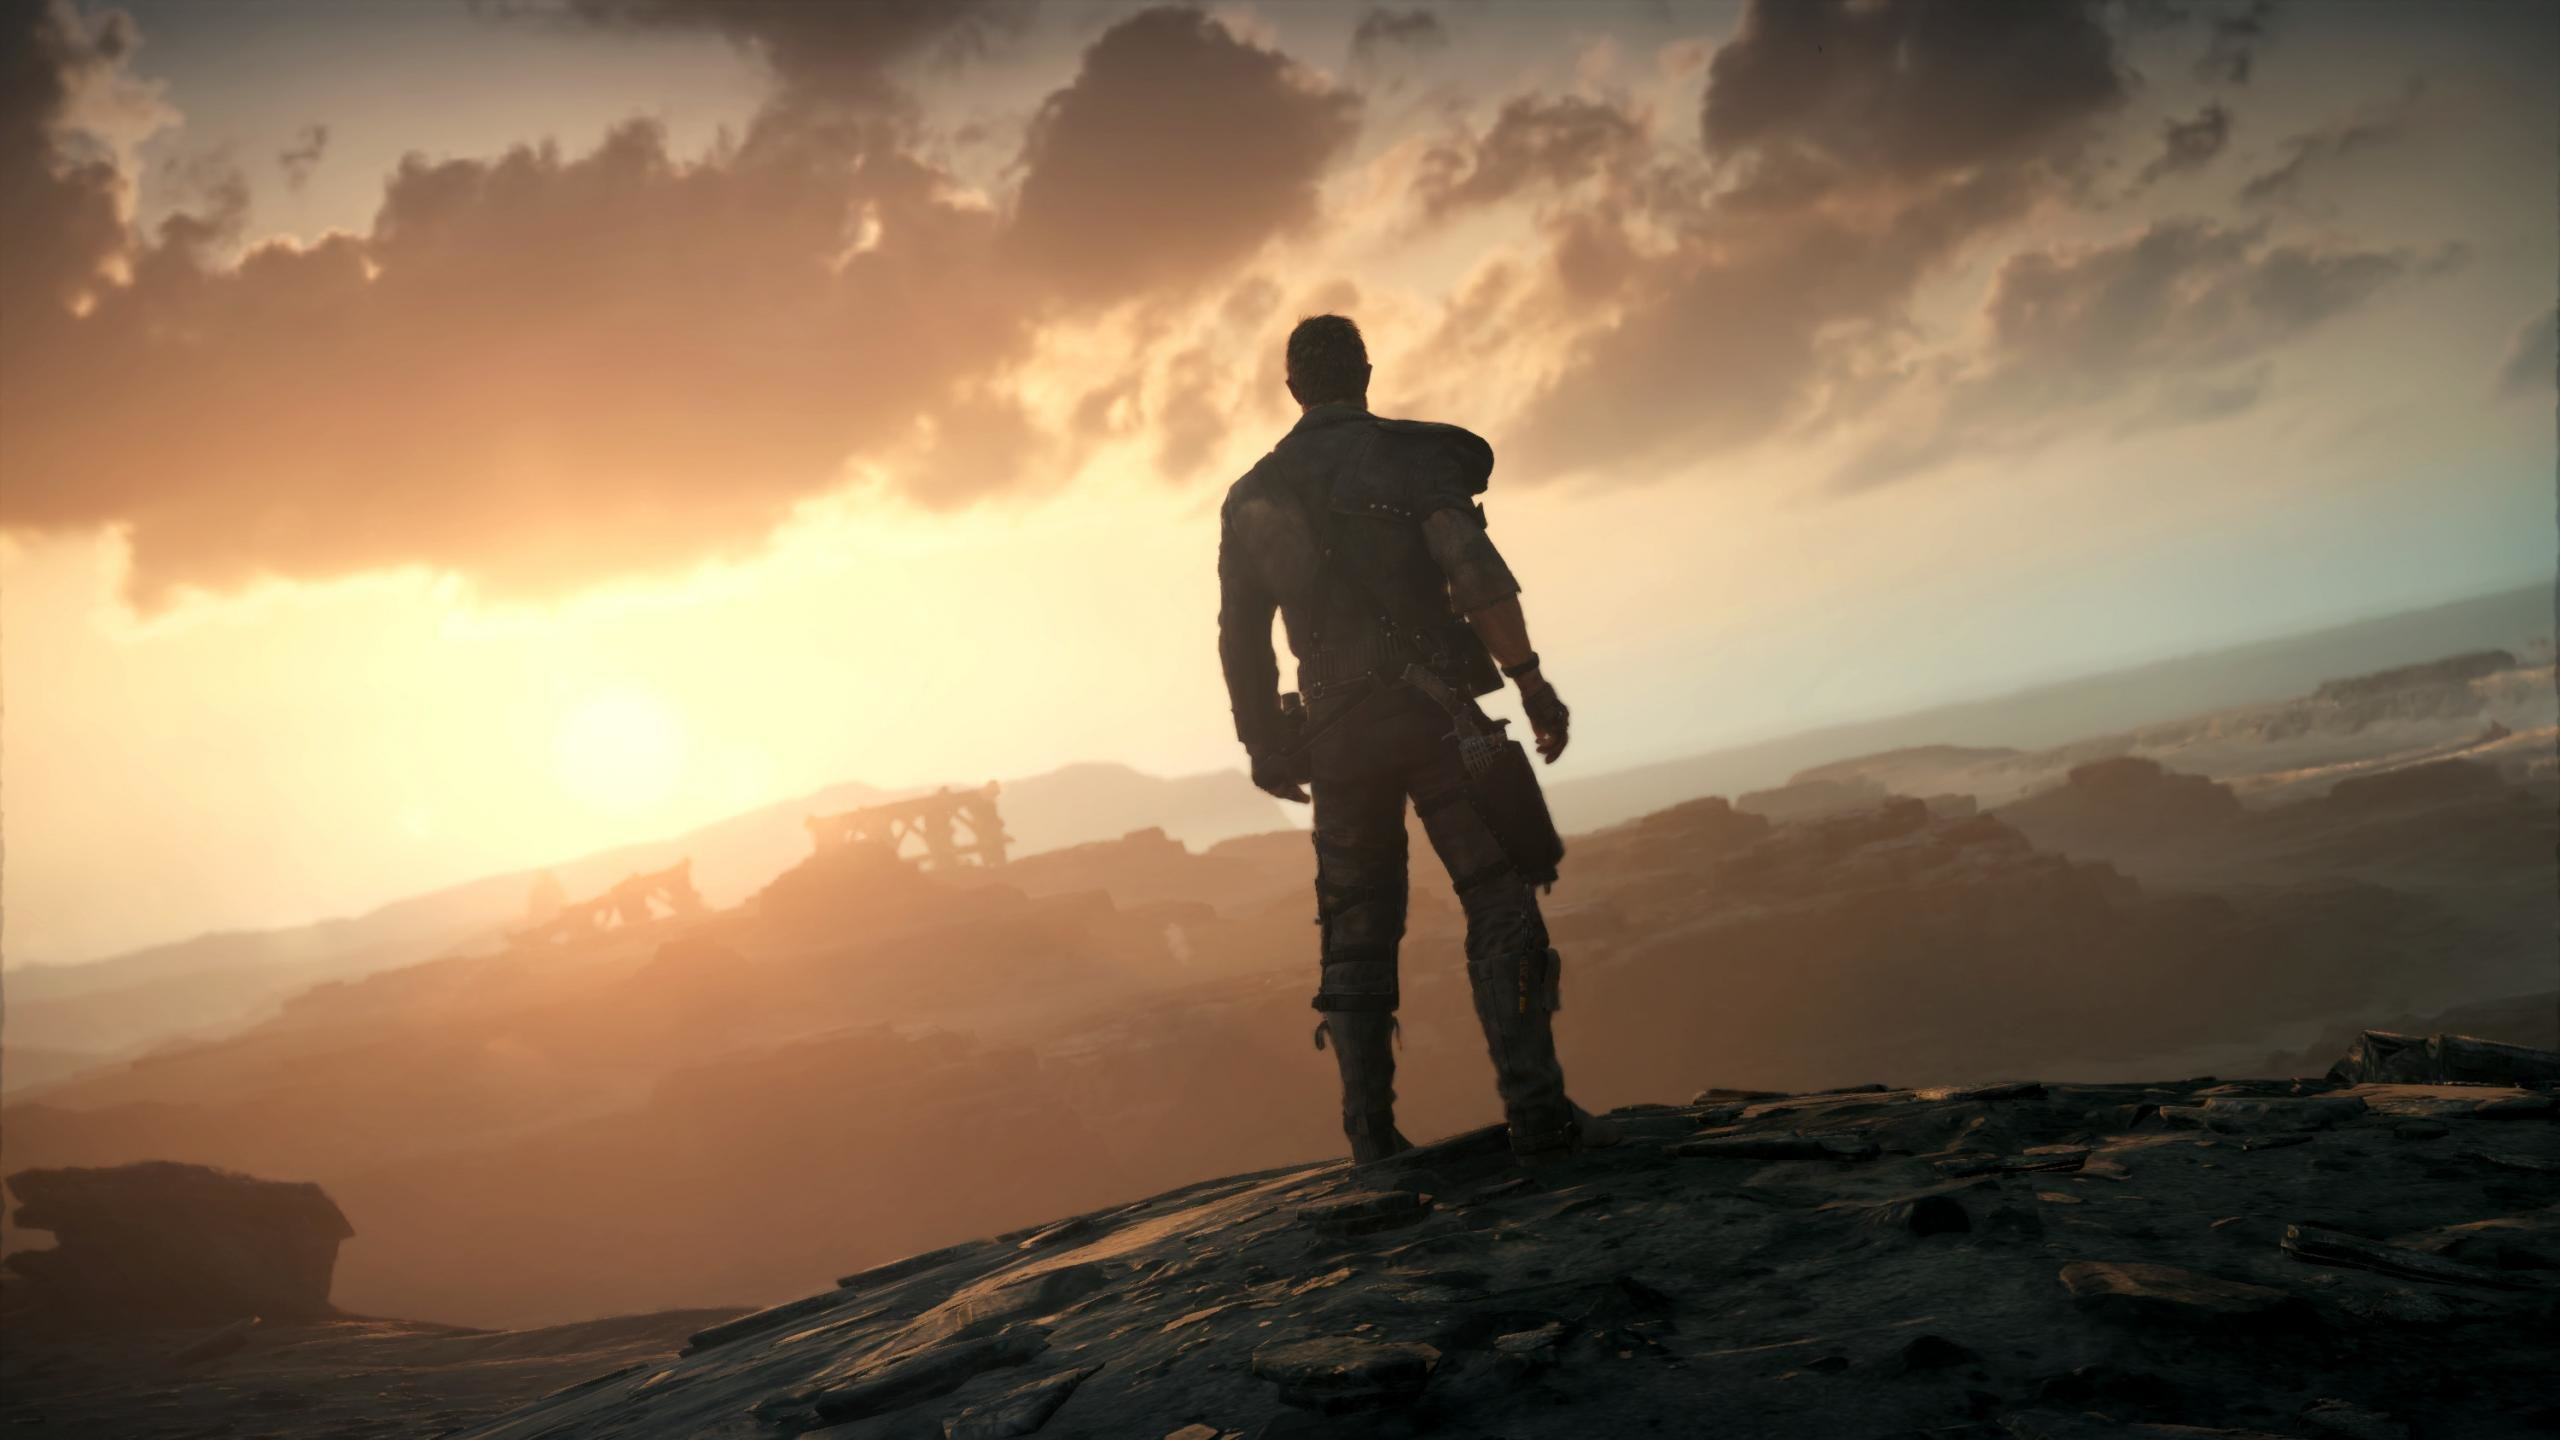 Download Hd 2560x1440 Mad Max Video Game Pc Wallpaper Id315101 For Free